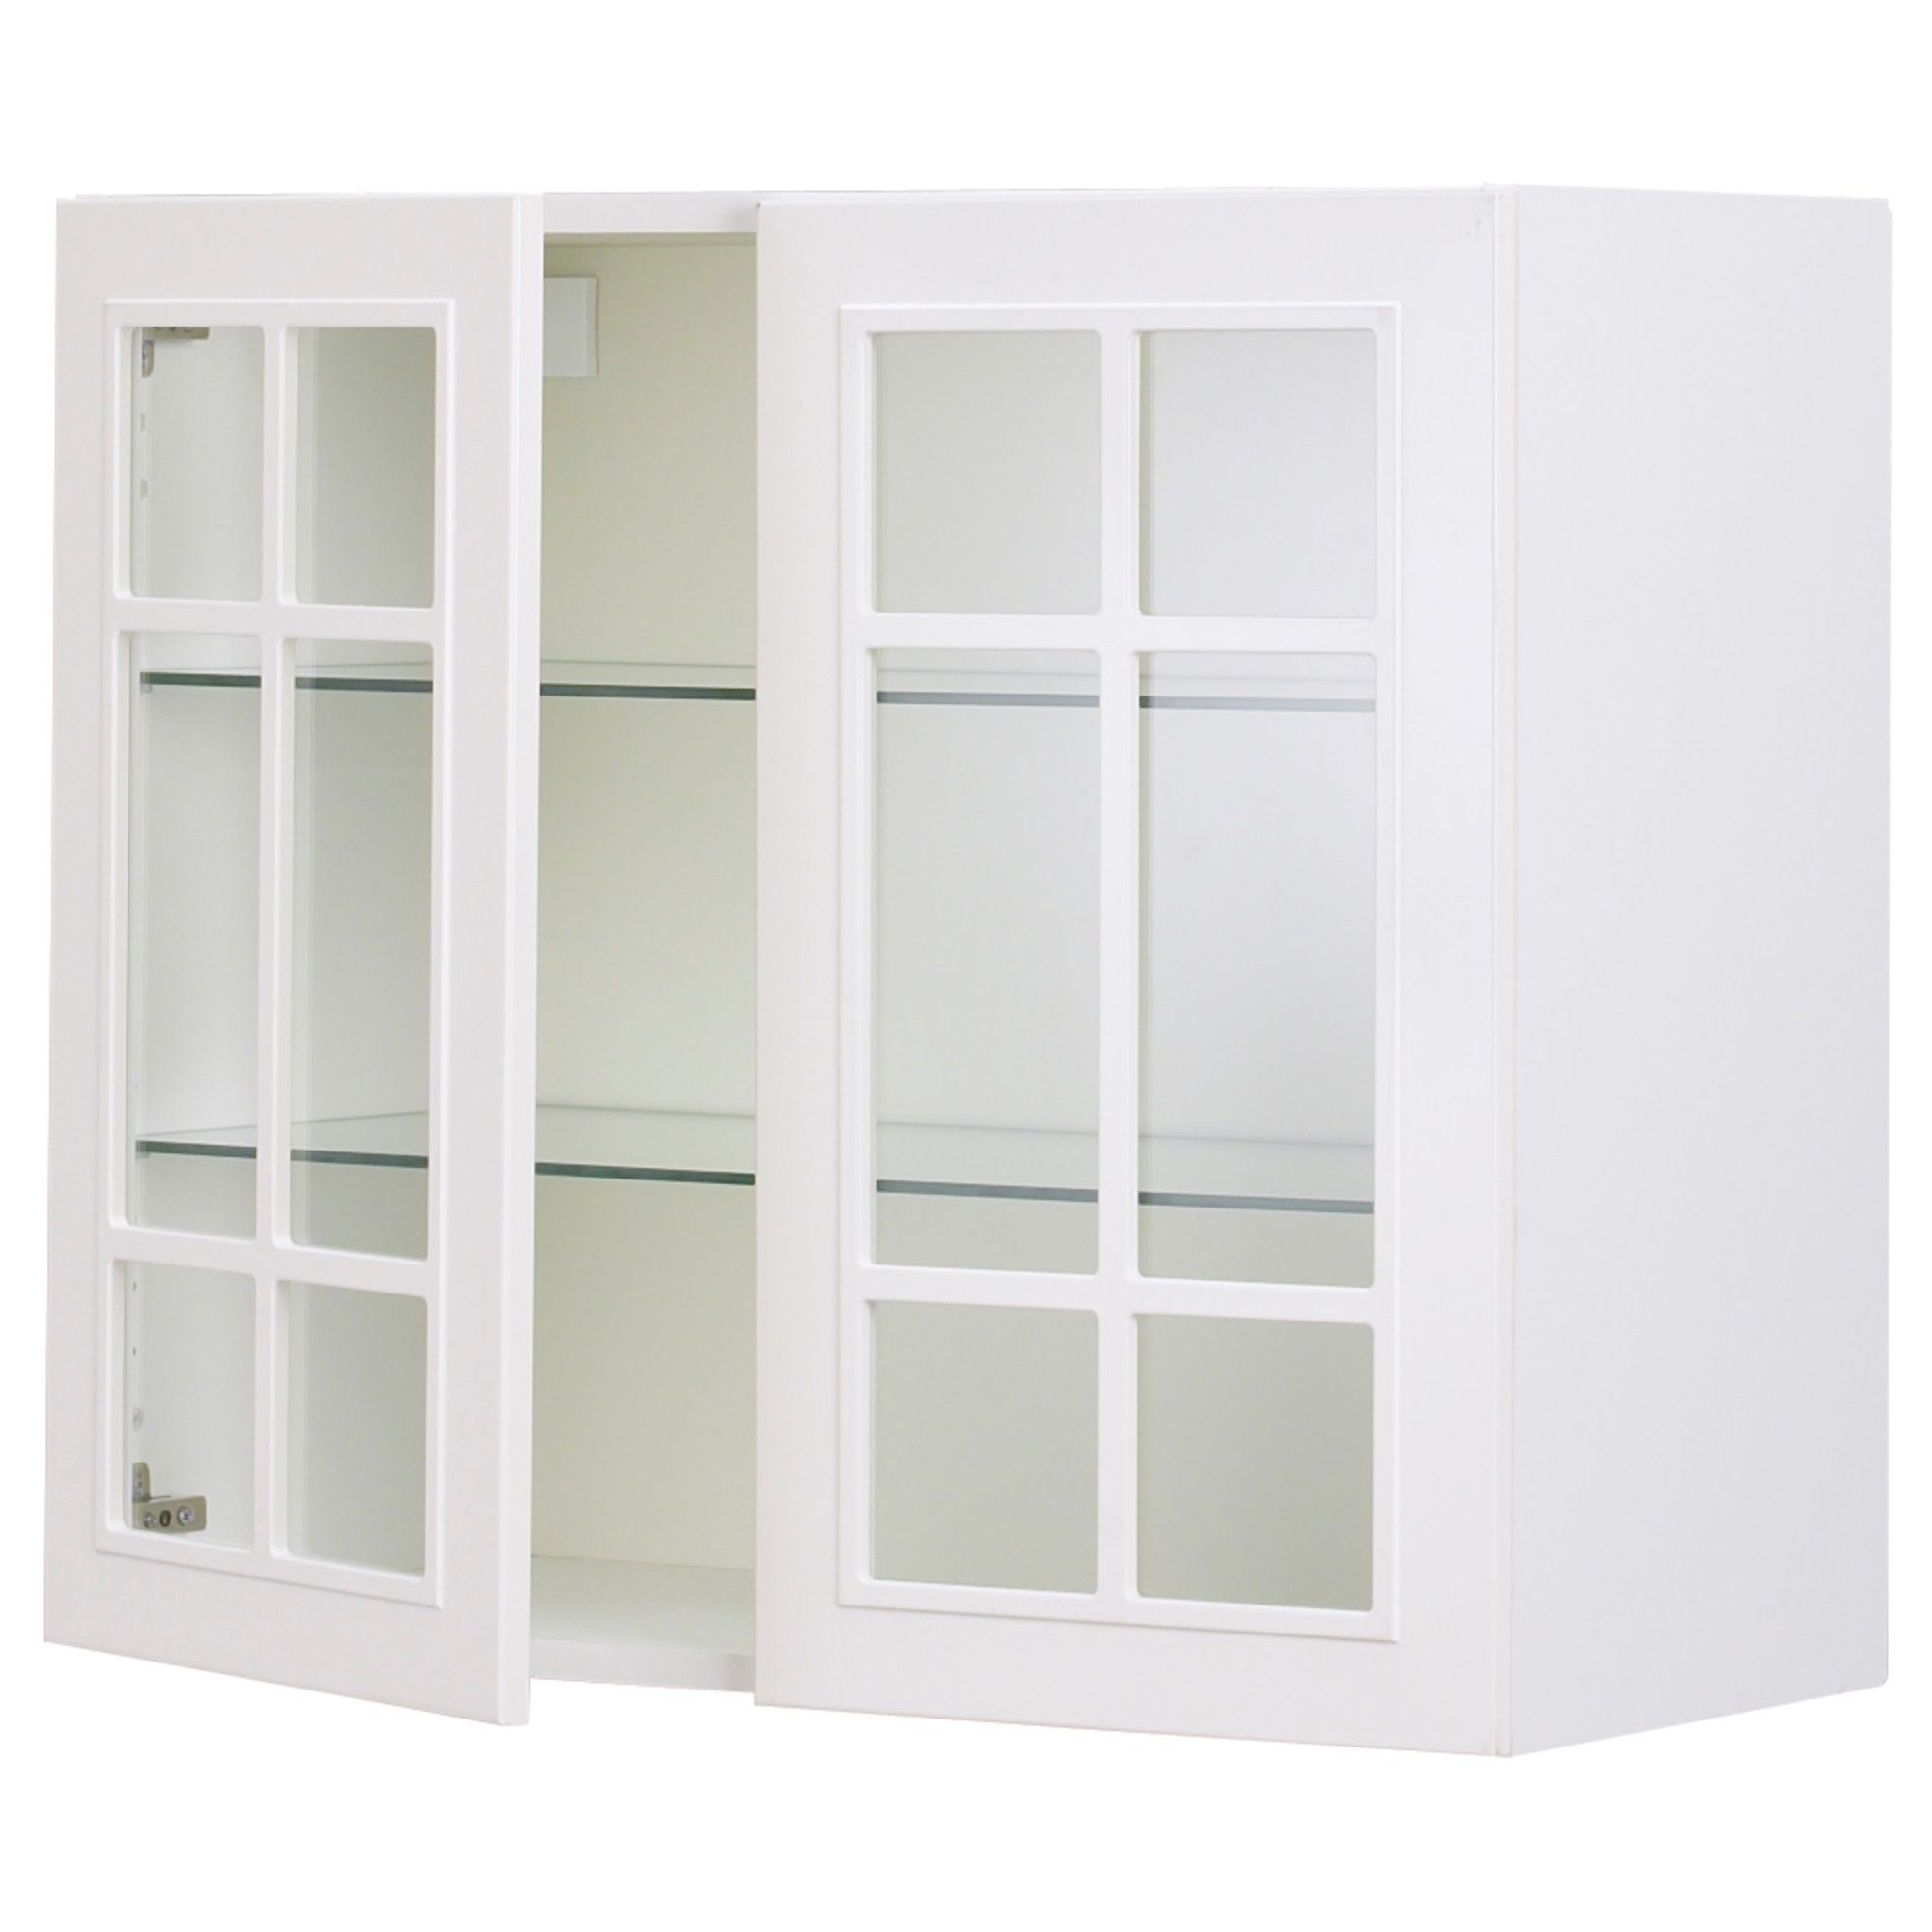 215 30 X 30 Glass Front Wall Cabinet Akurum Wall Cabinet With 2